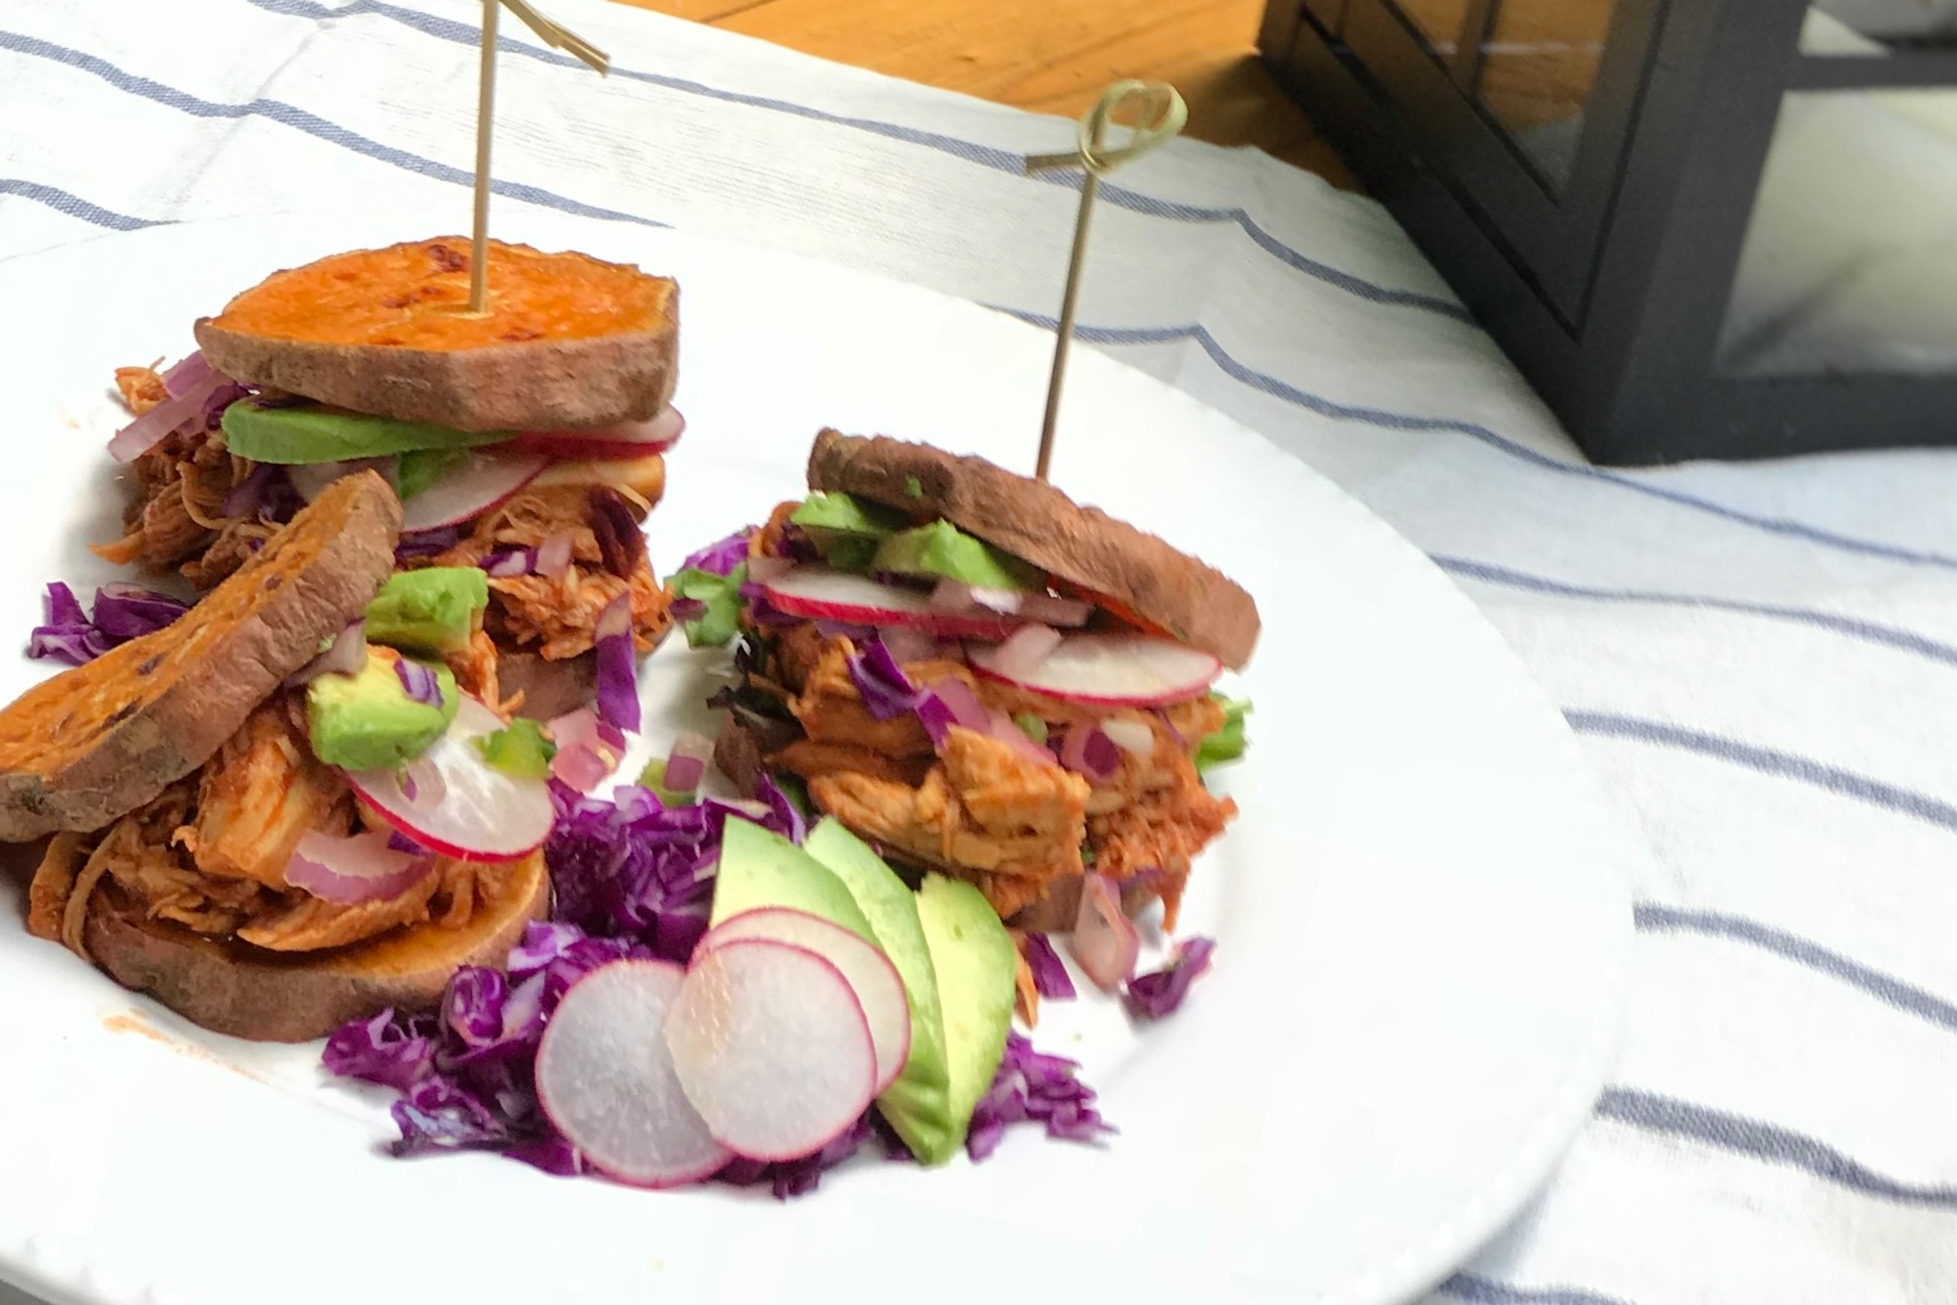 Buffalo Sliders featuring The New Primal's medium buffalo sauce! Great flavor, good heat. It pairs great with the sweet potato sliders and crunchy red cabbage and radishes. Cool it off with a little avocado and a squeeze of lime!